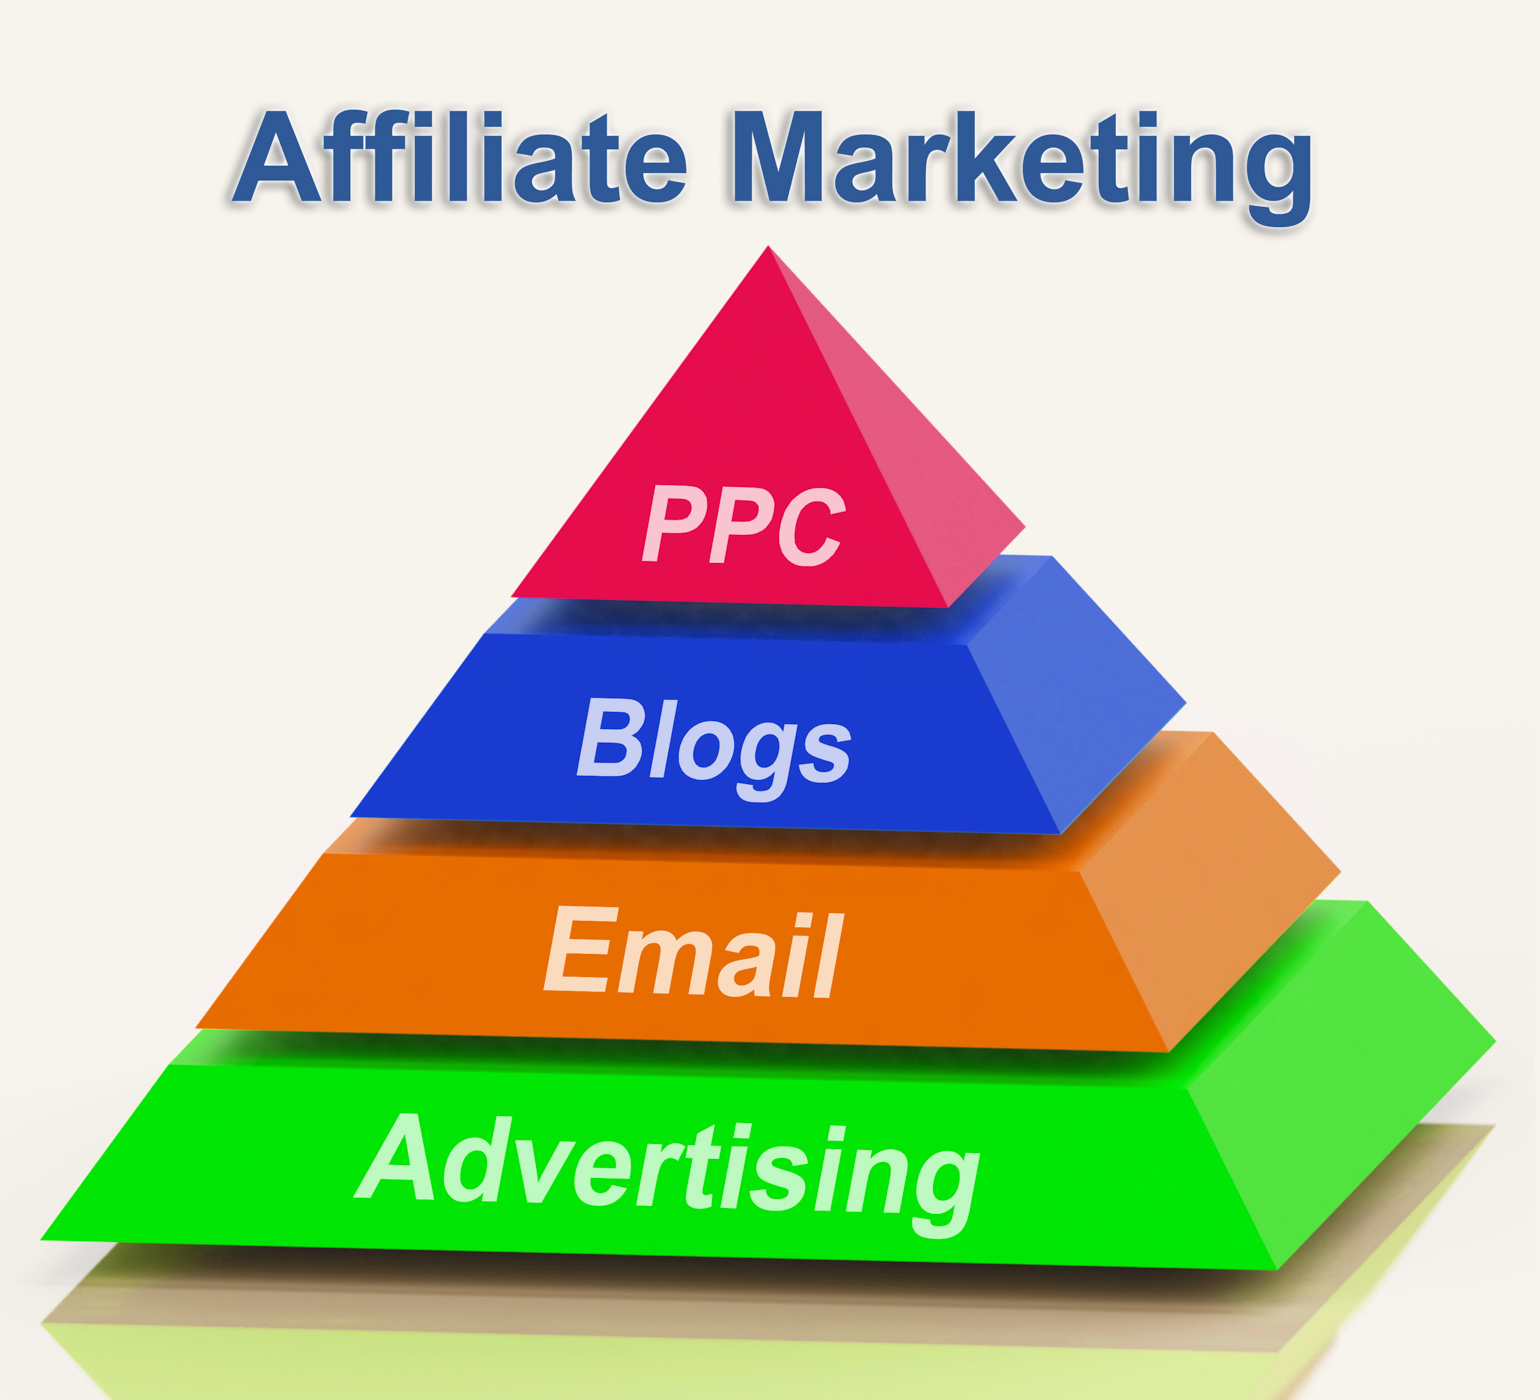 stockvault-affiliate-marketing-pyramid-shows-emailing-blogging-advertisements-and239088